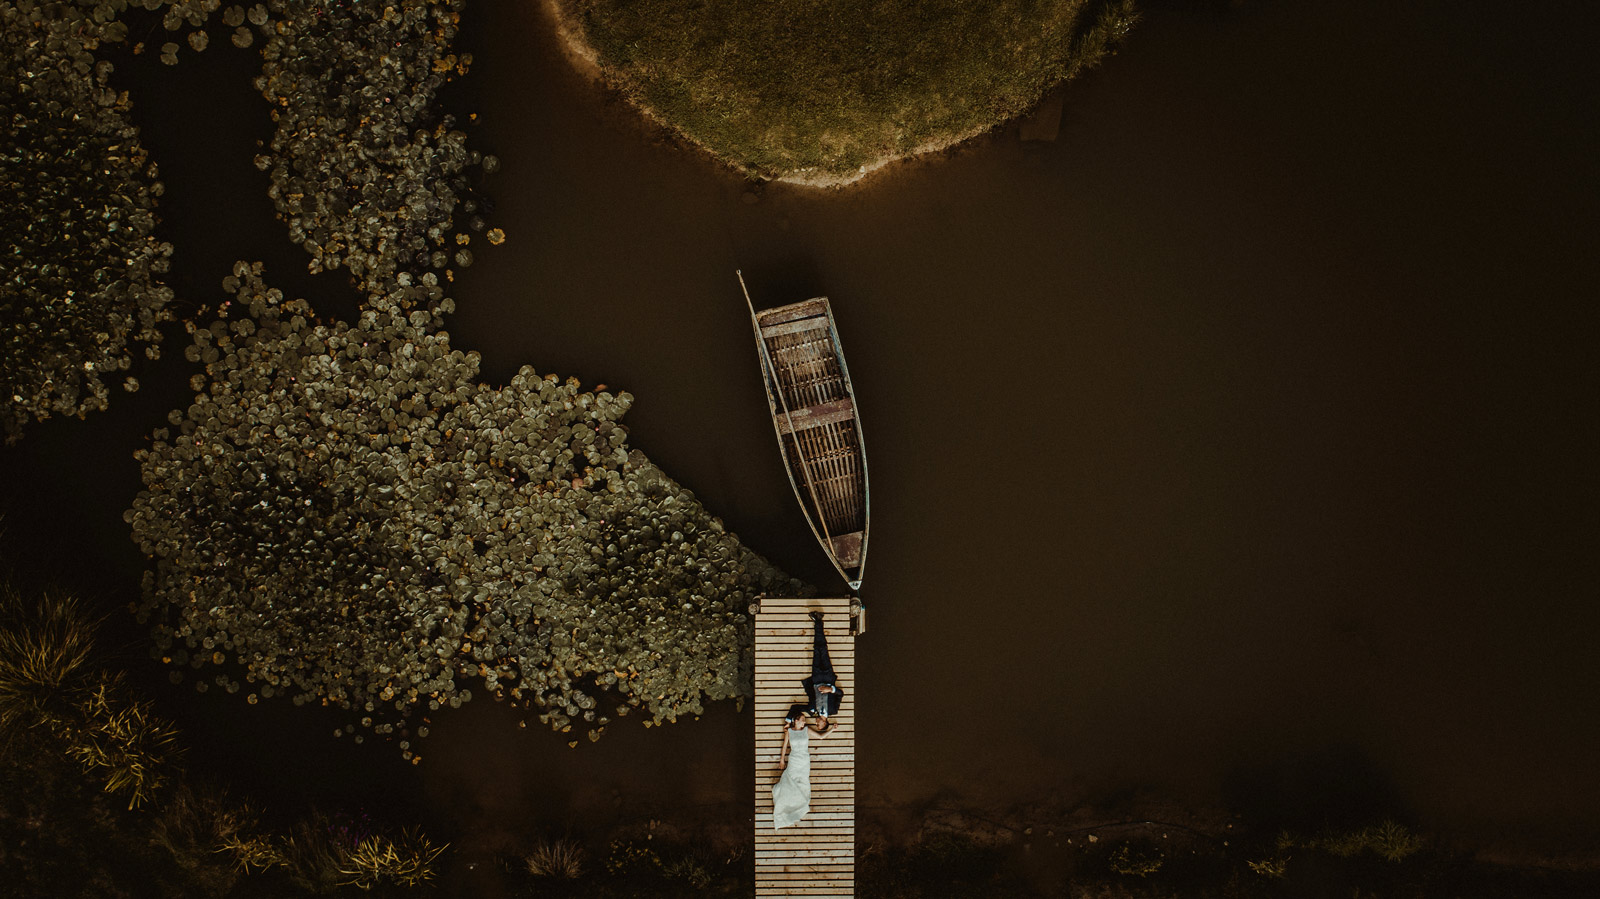 Emily and Andrew at the lake taken with a drone